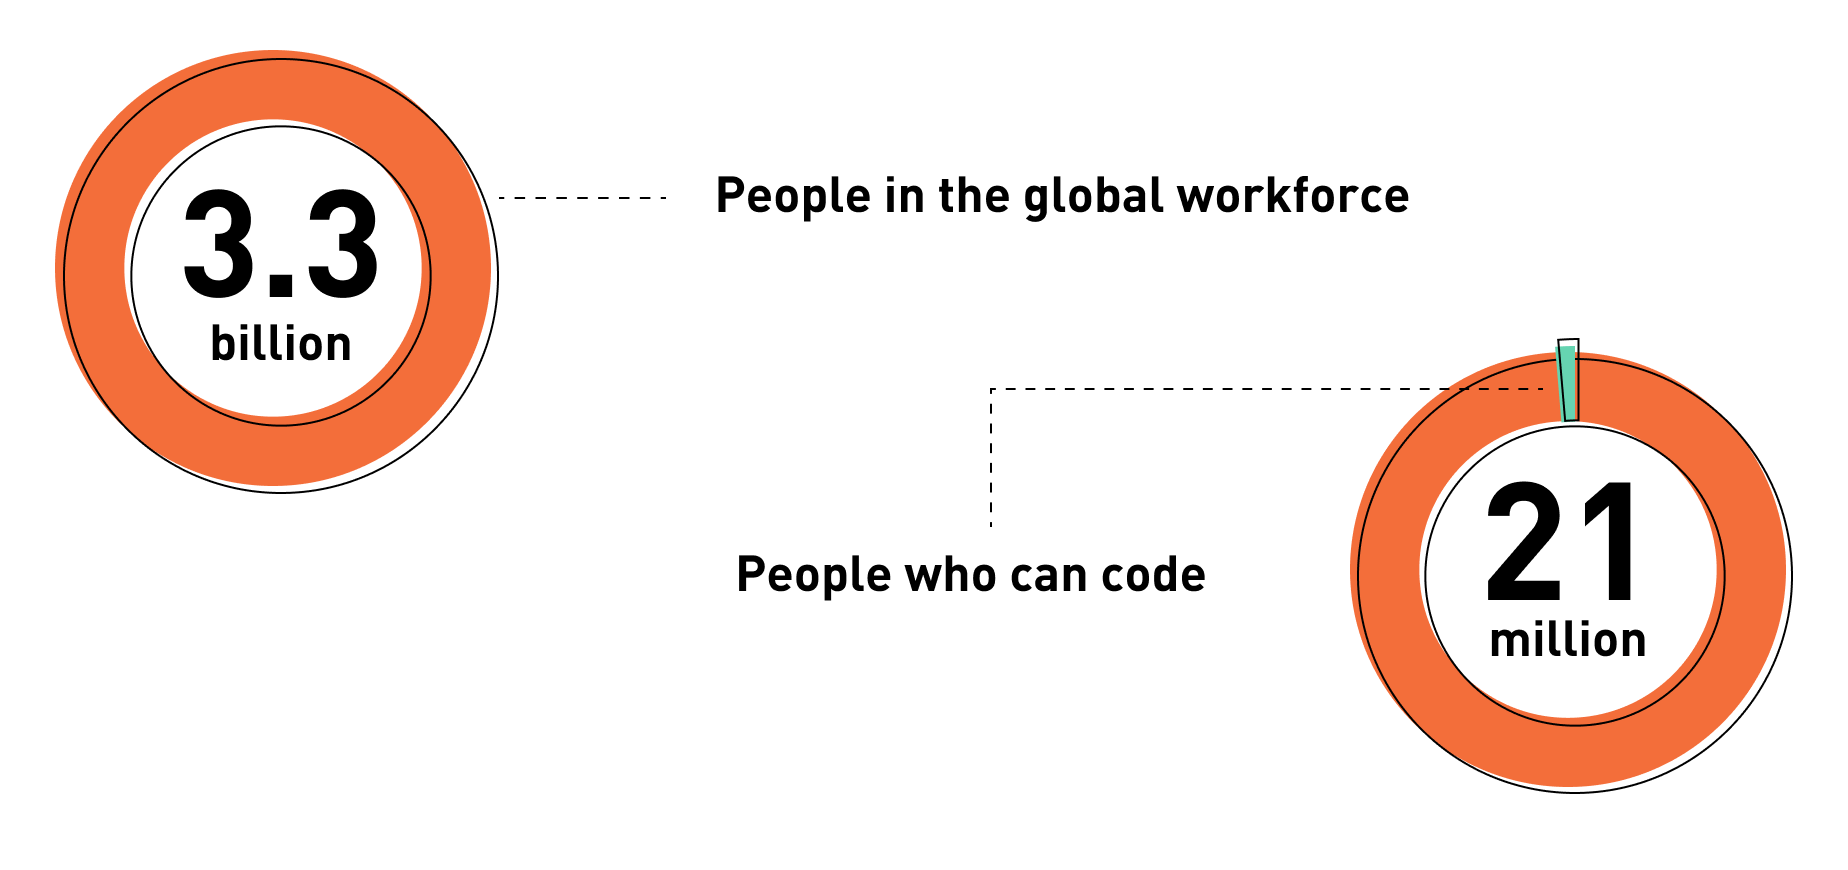 giniPredict blog | There are 3.3 Billion people in the global workforce, and only 21 million of them can code